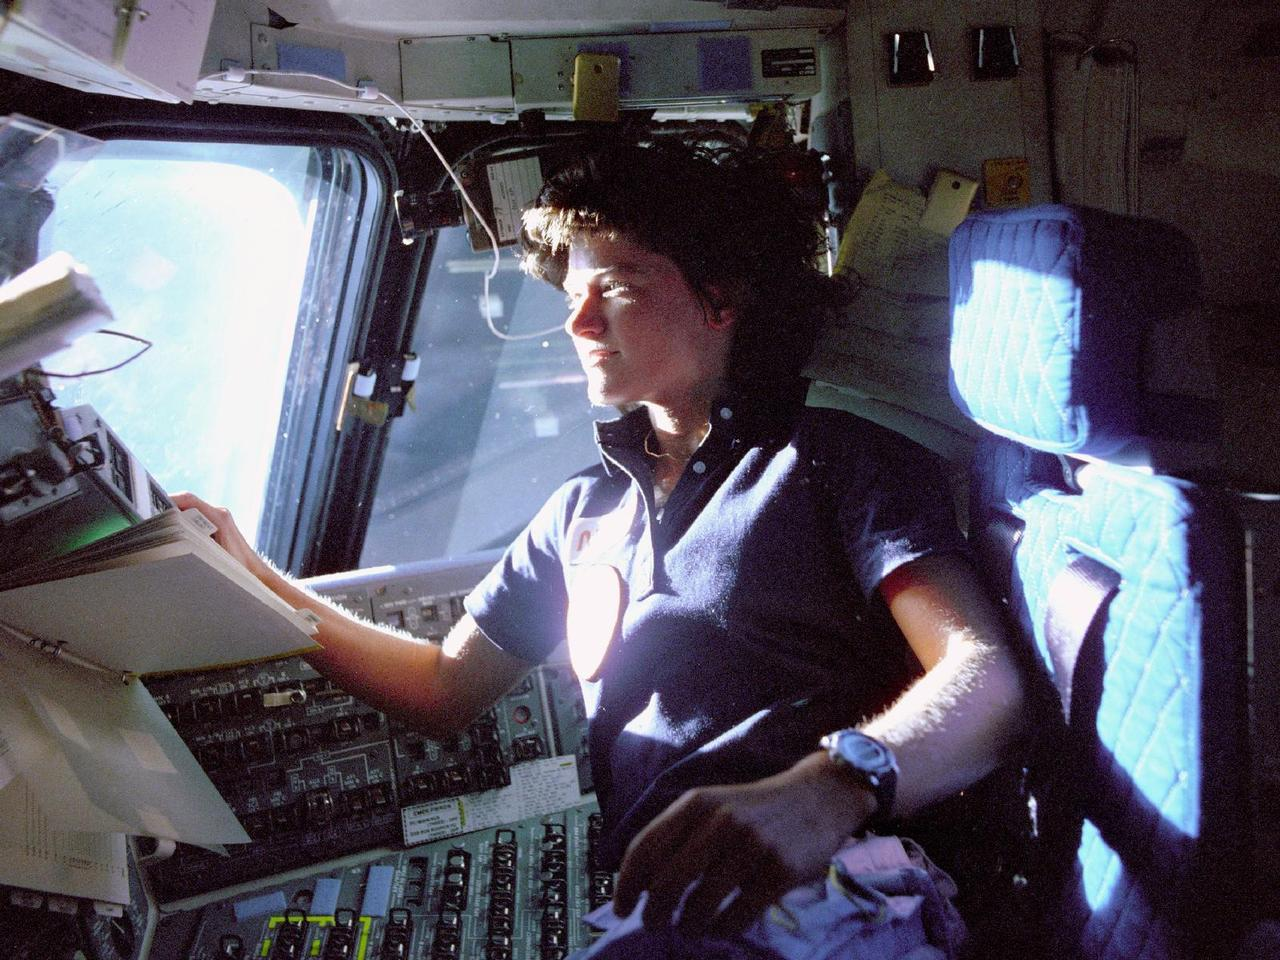 R.I.P. Dr. Sally Ride, the first American woman in space, dead at 61 after battling pancreatic cancer. (Photo via WWFFM.org)